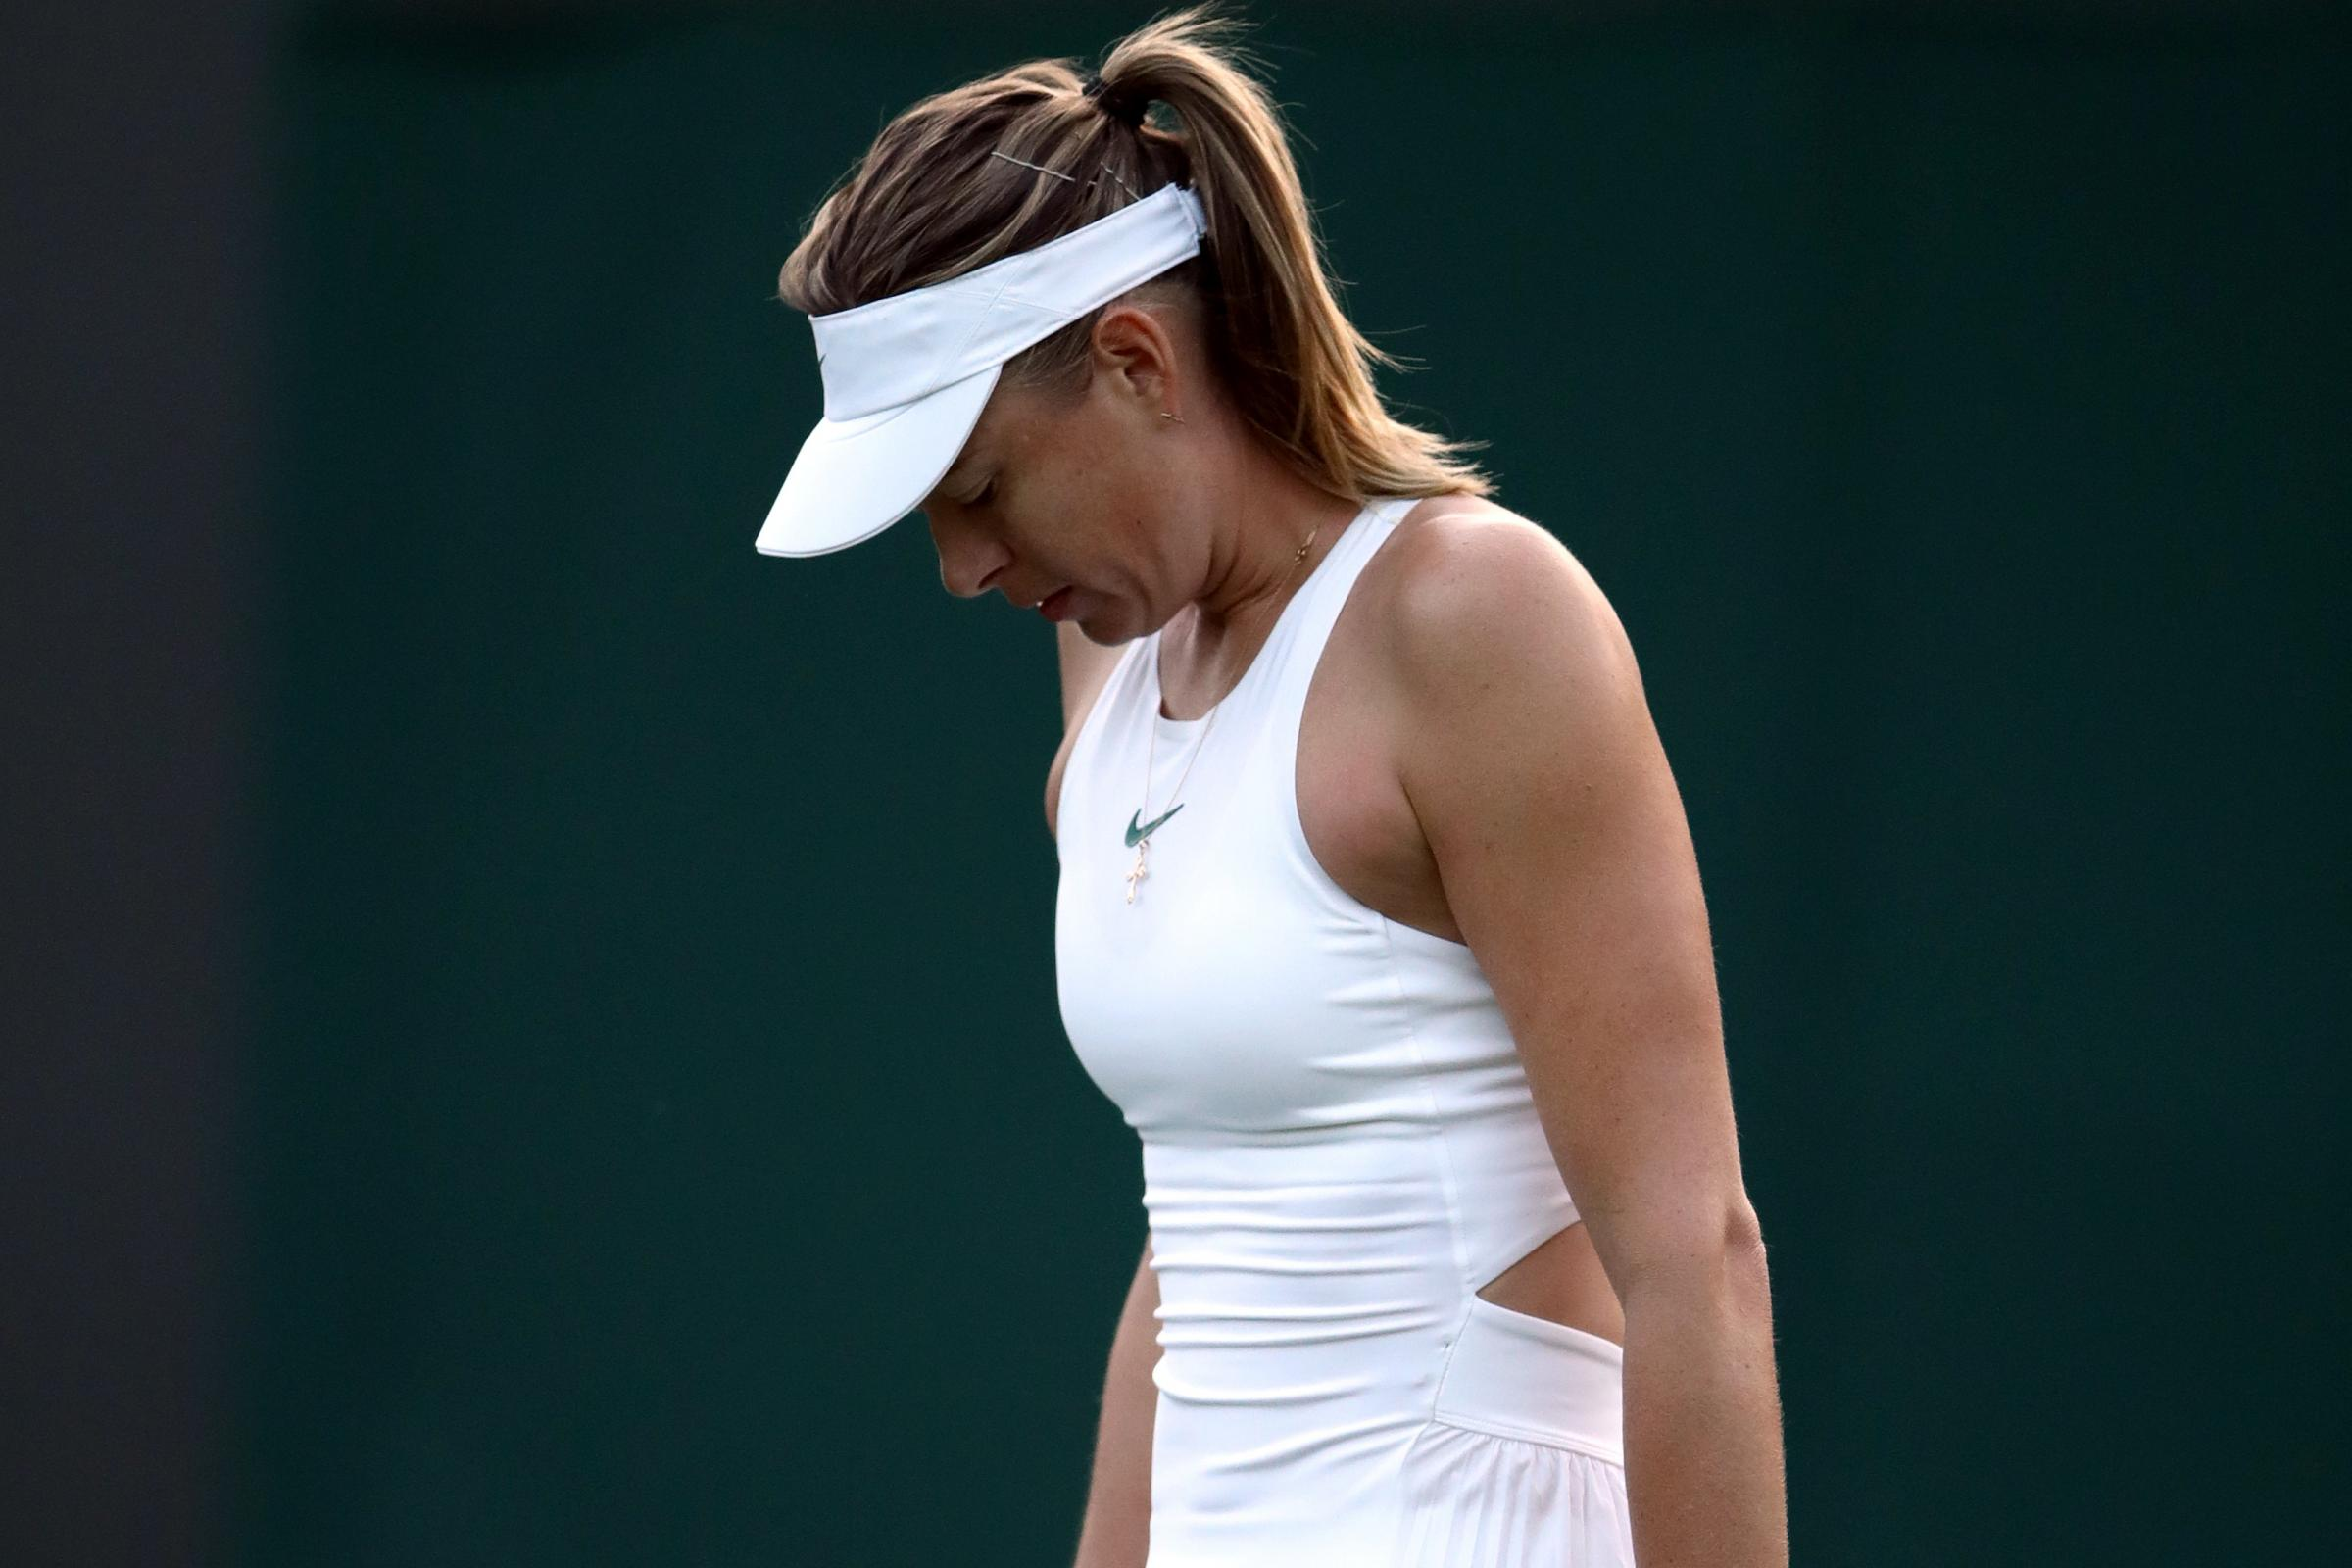 Maria Sharapova has been ruled out of Roland Garros